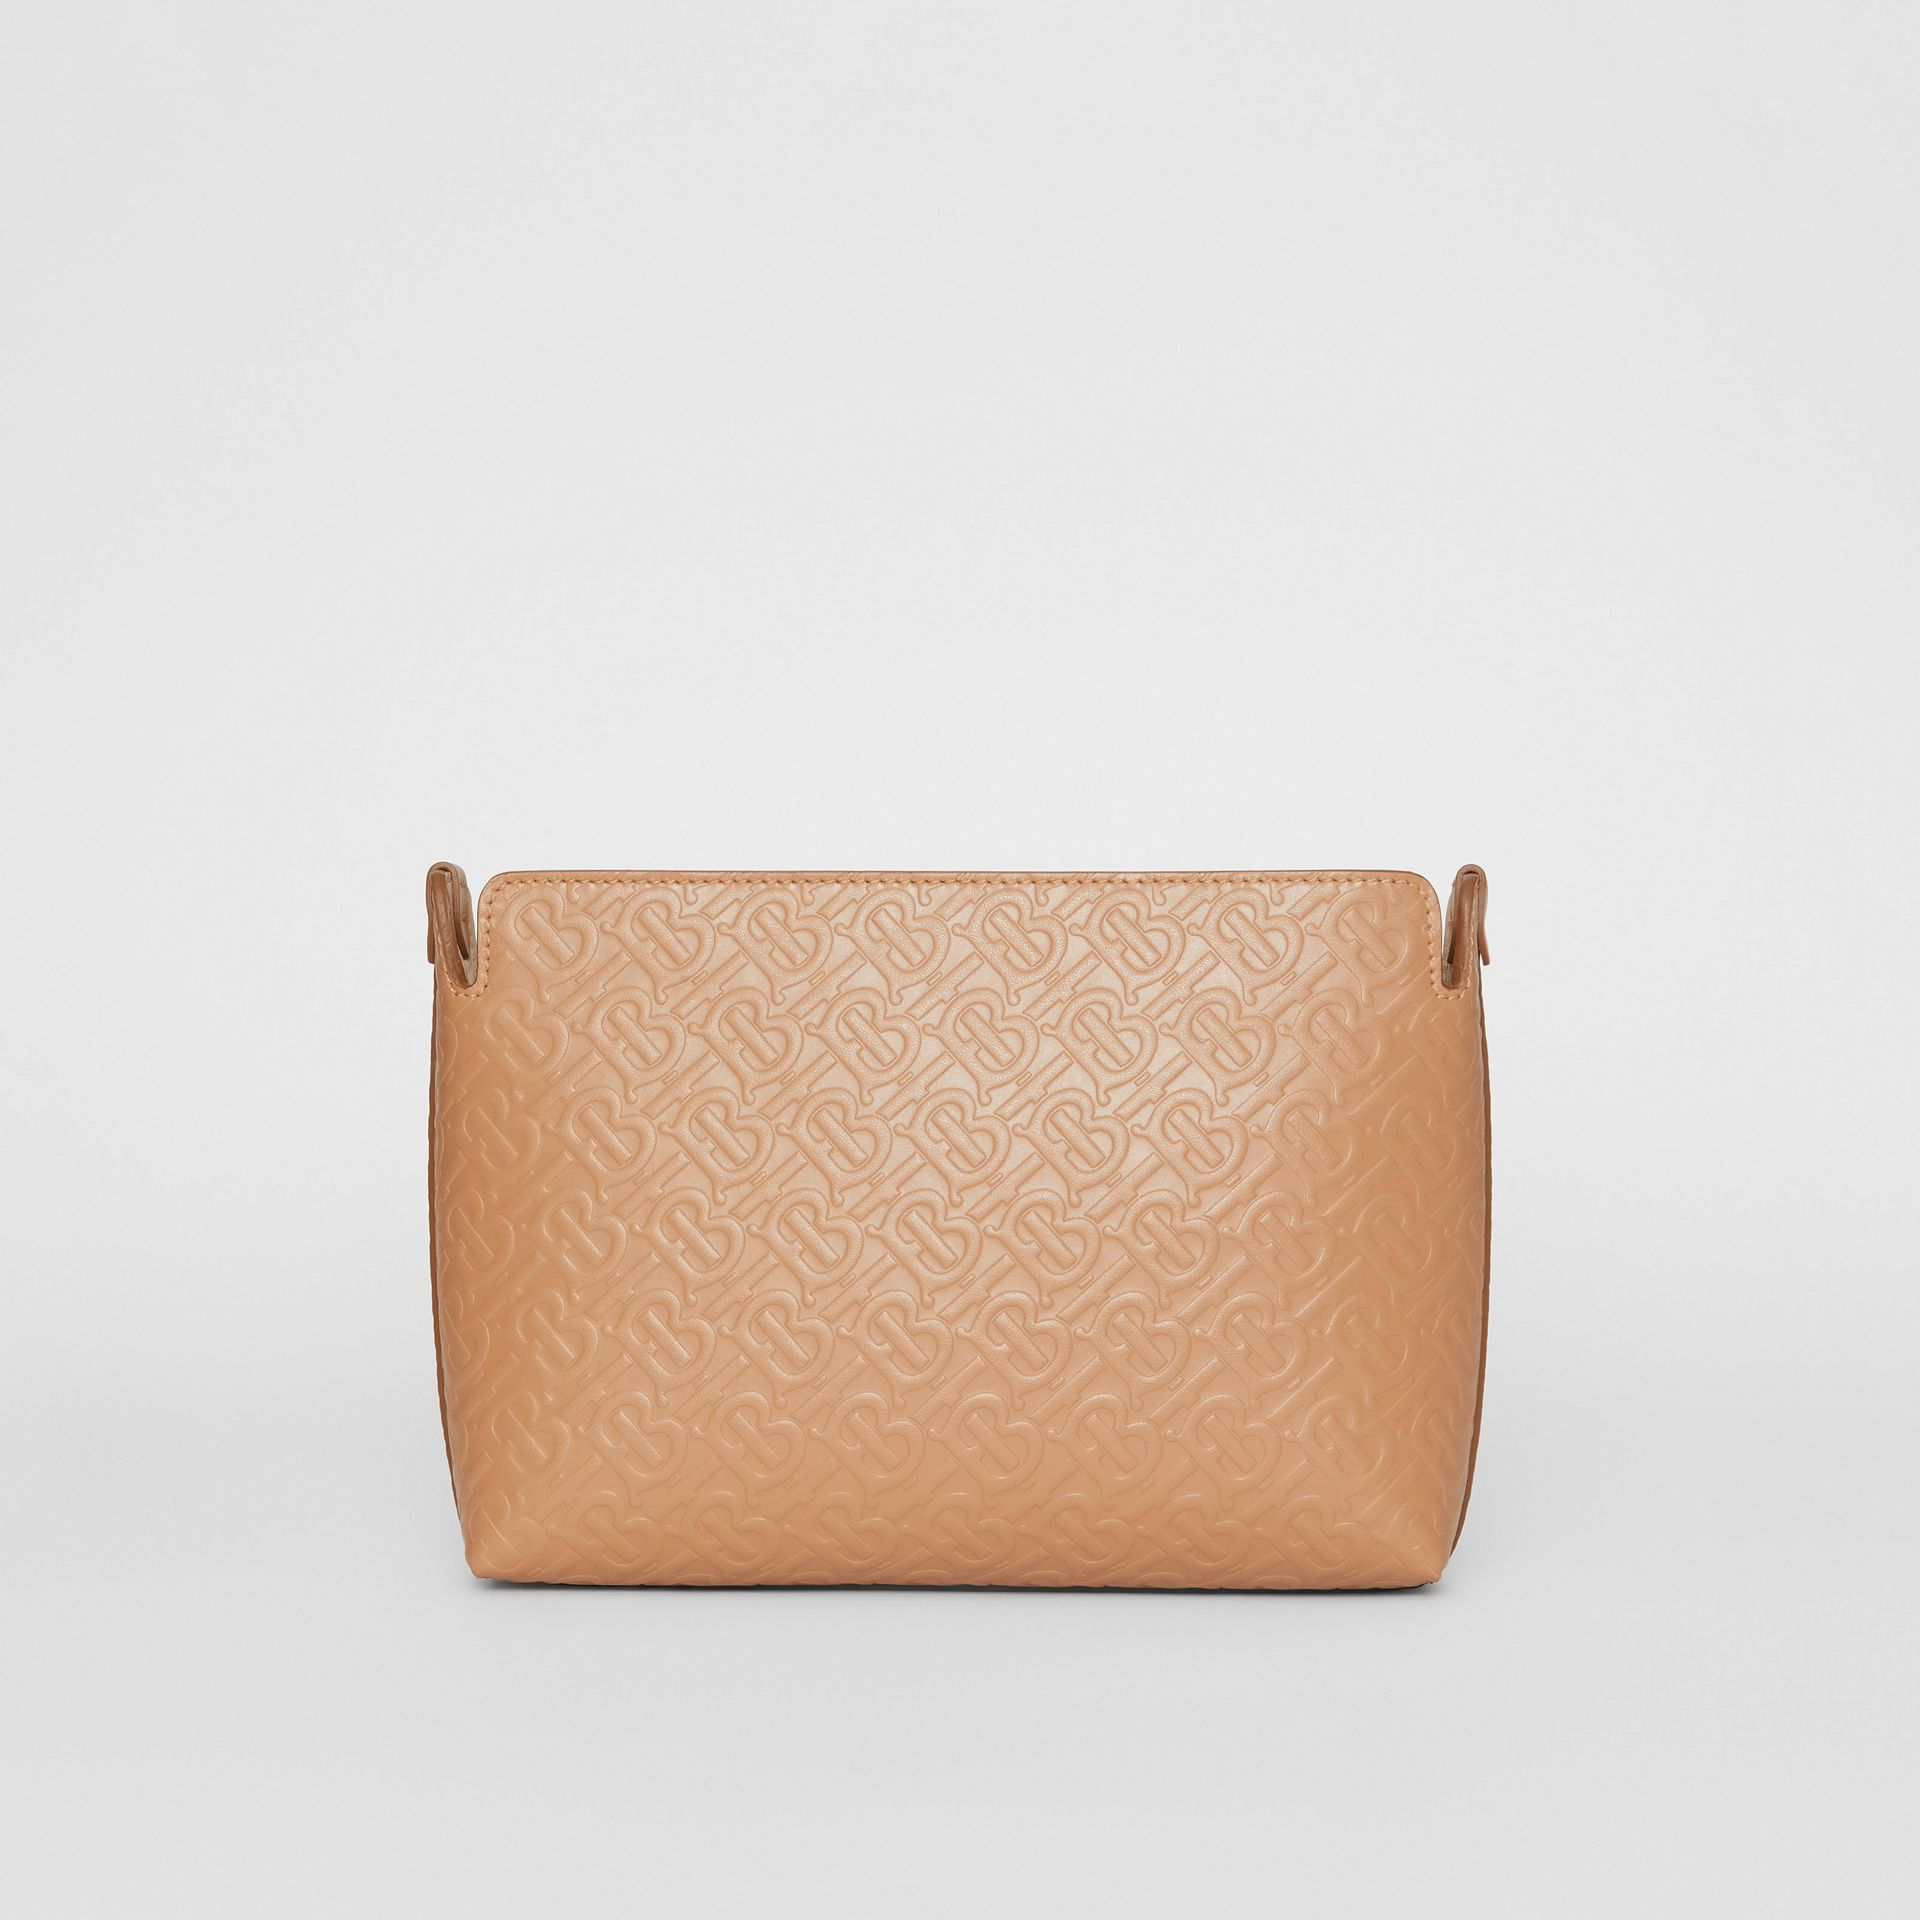 Medium Monogram Leather Clutch in Light Camel - Women | Burberry United States - gallery image 6